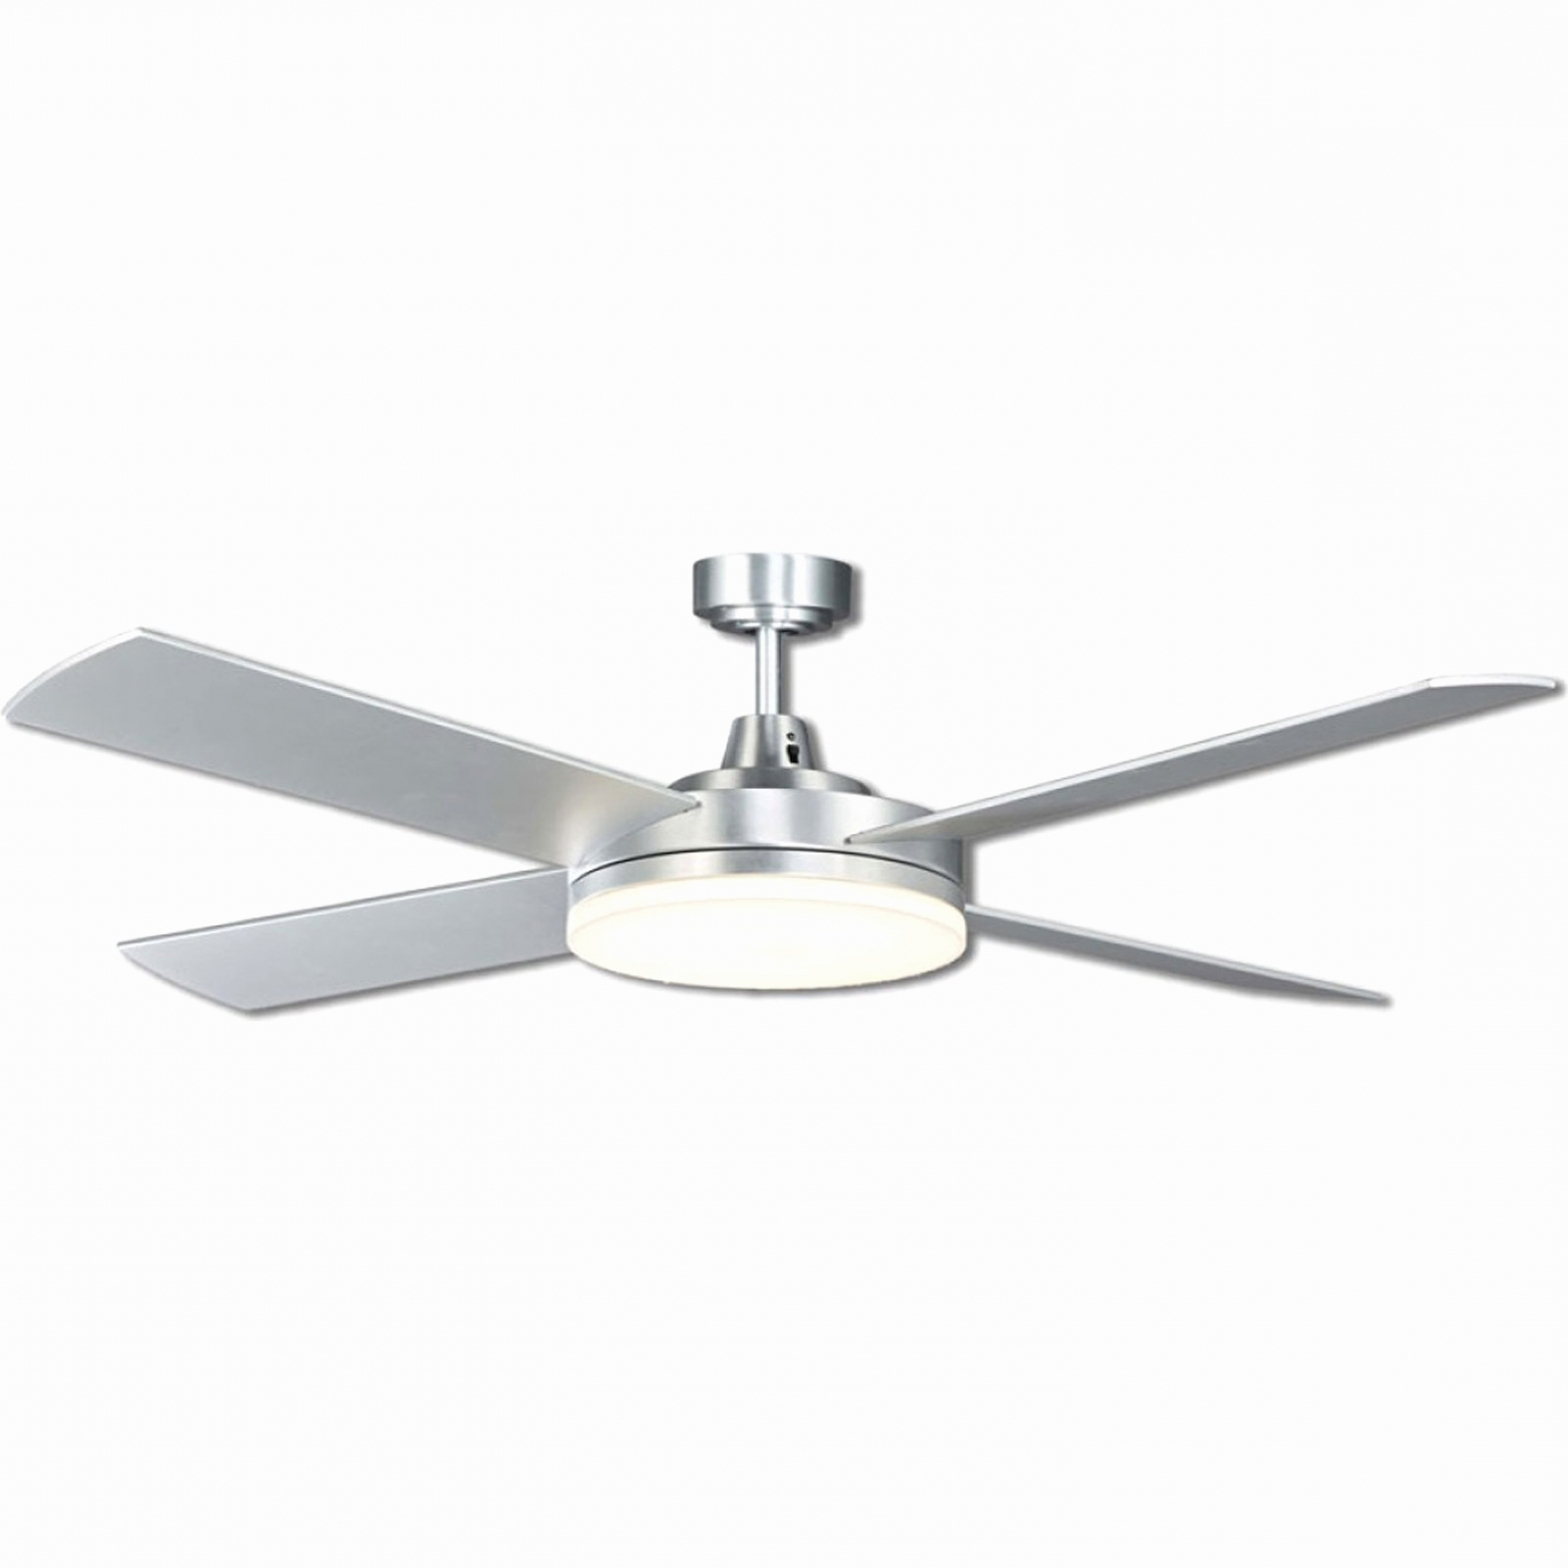 Tips: Outdoor Ceiling Fans With Lights Wet Rated Contemporary Intended For Most Recent Wet Rated Outdoor Ceiling Fans With Light (View 17 of 20)